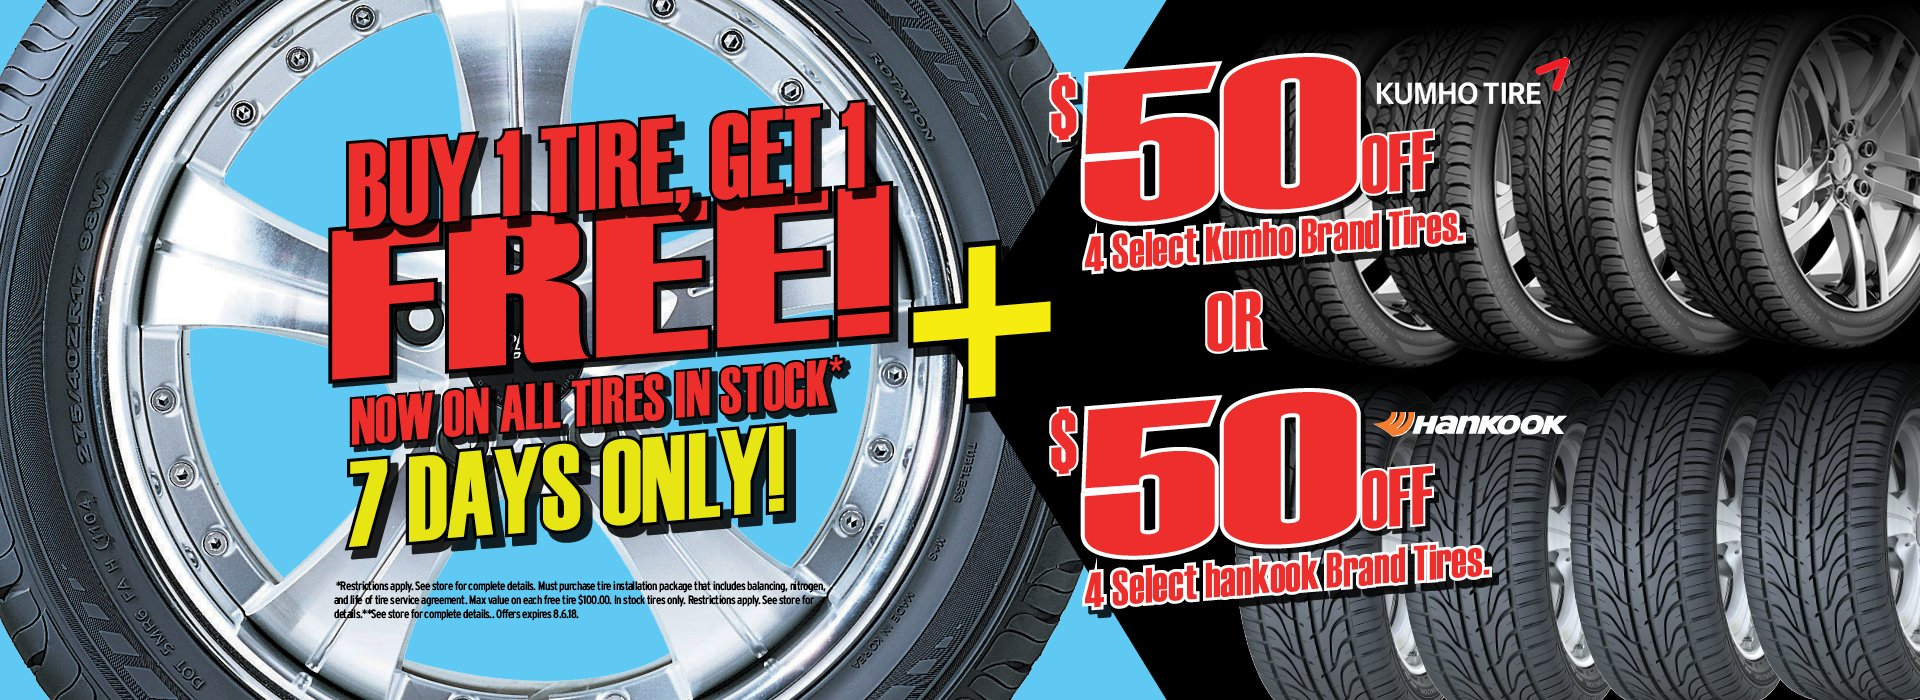 Tire Deals Weekly Auto Service Specials Coupons Discount Tirerhdiscounttirecenters: Discount Tire Locations Denver At Gmaili.net